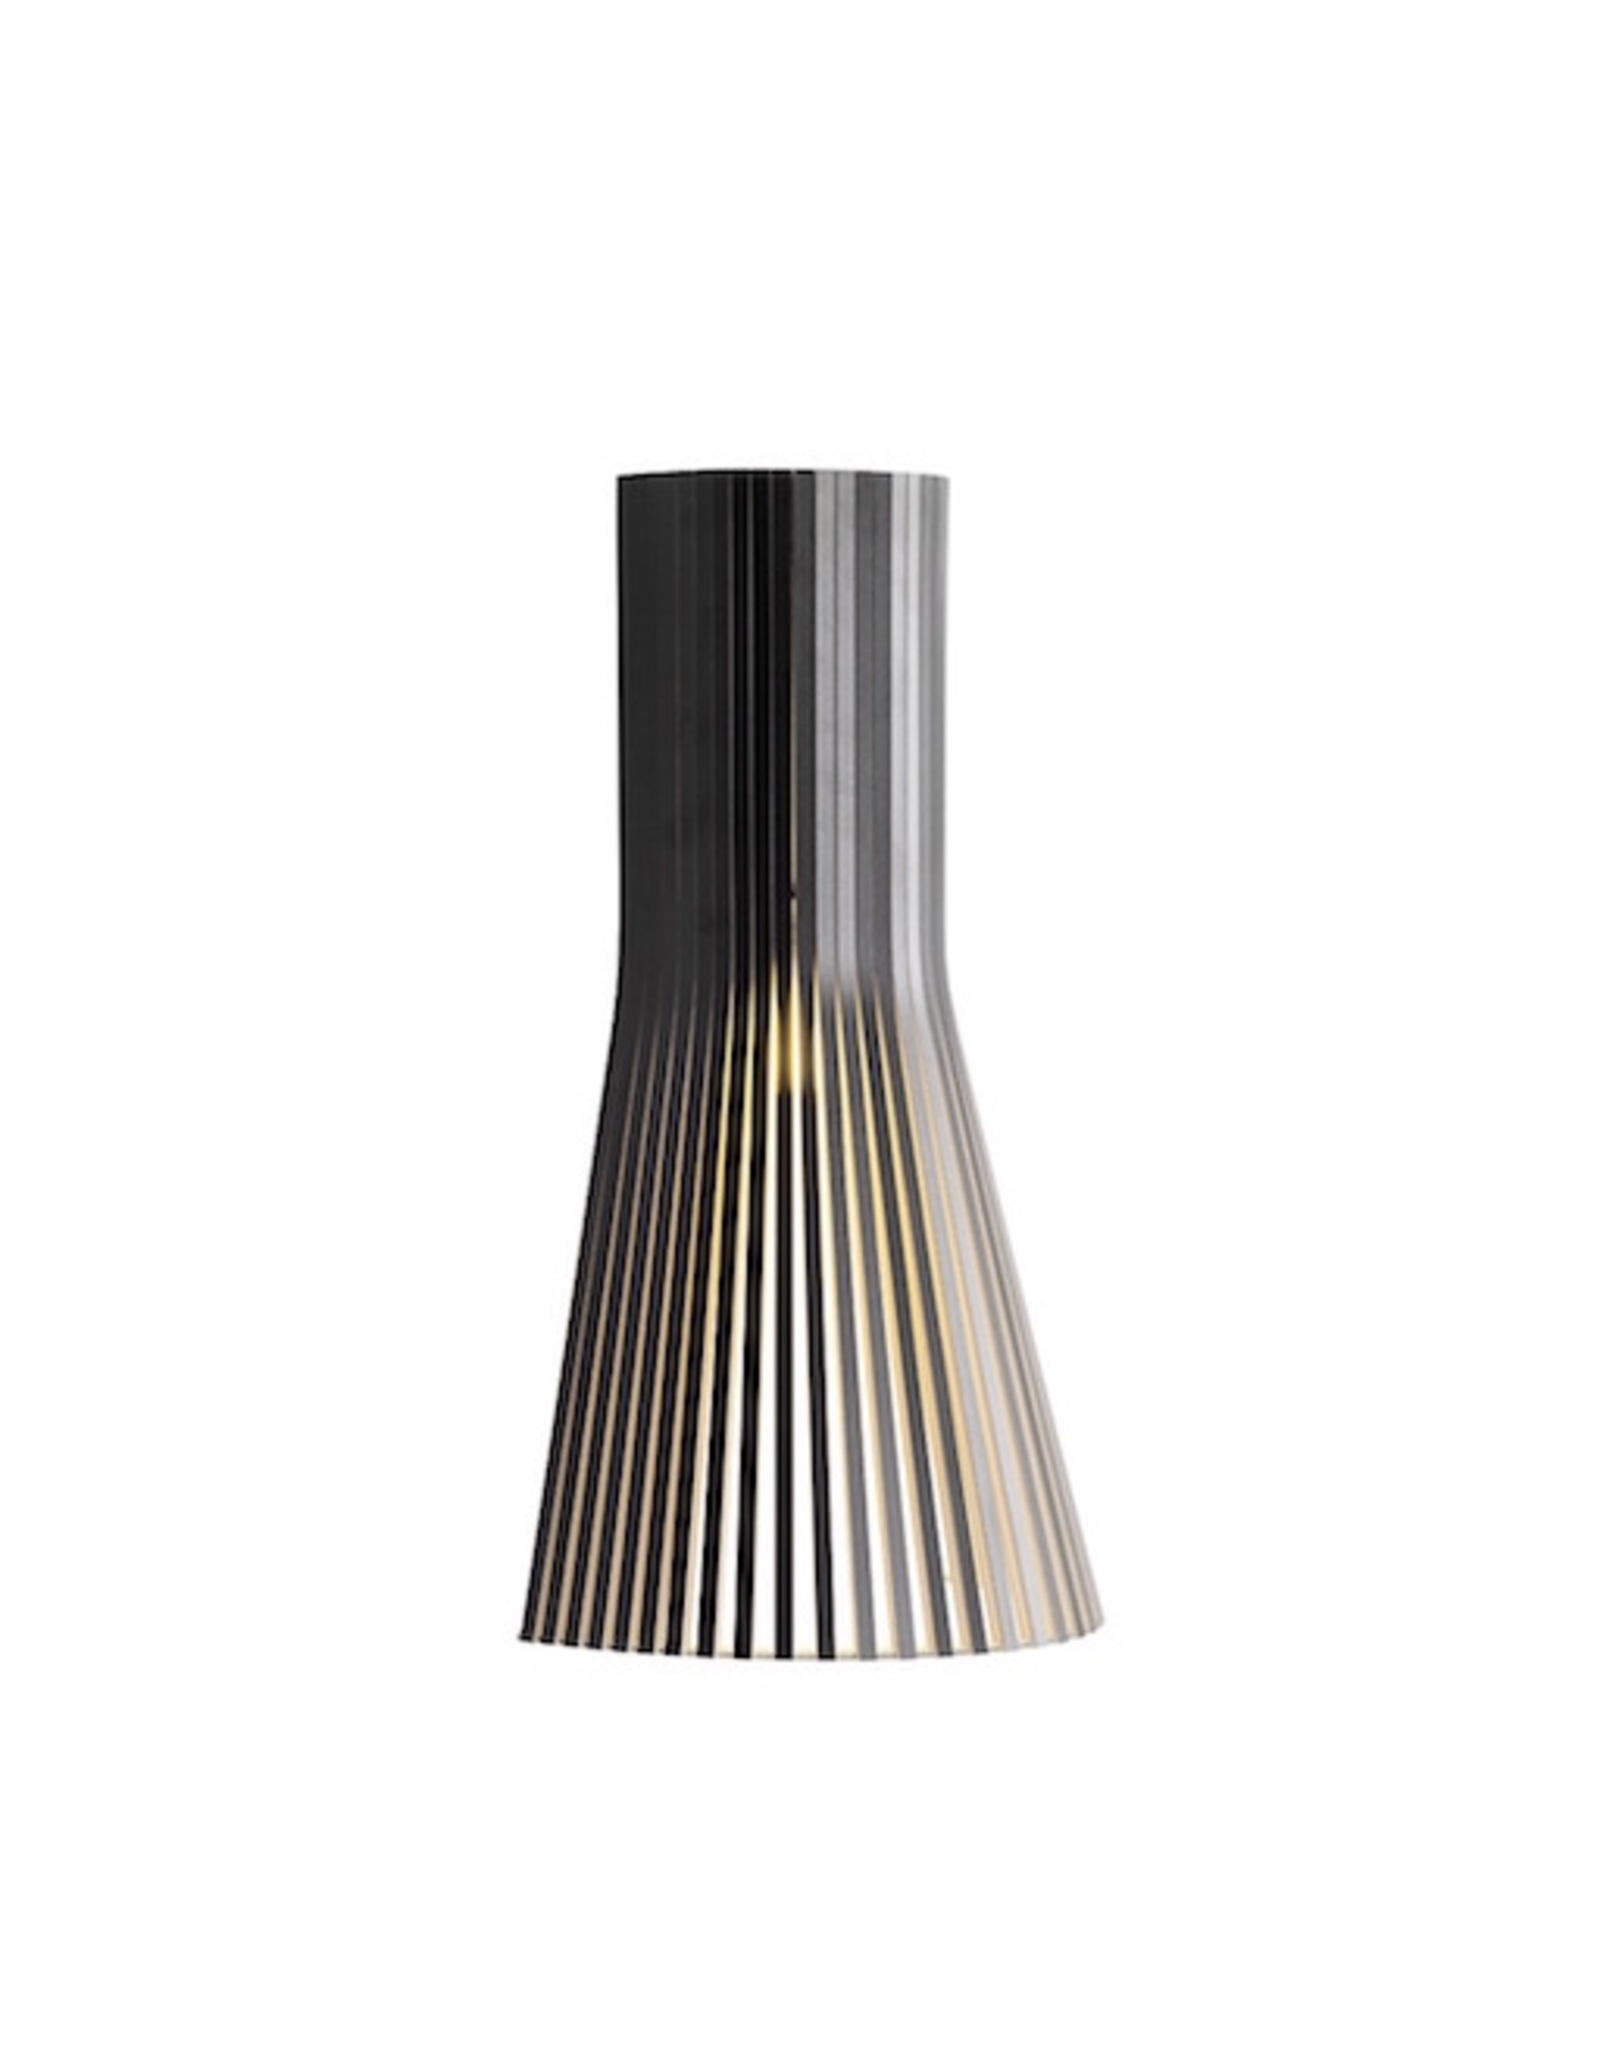 SECTO DESIGN SECTO 4231 WALL LAMP IN BLACK